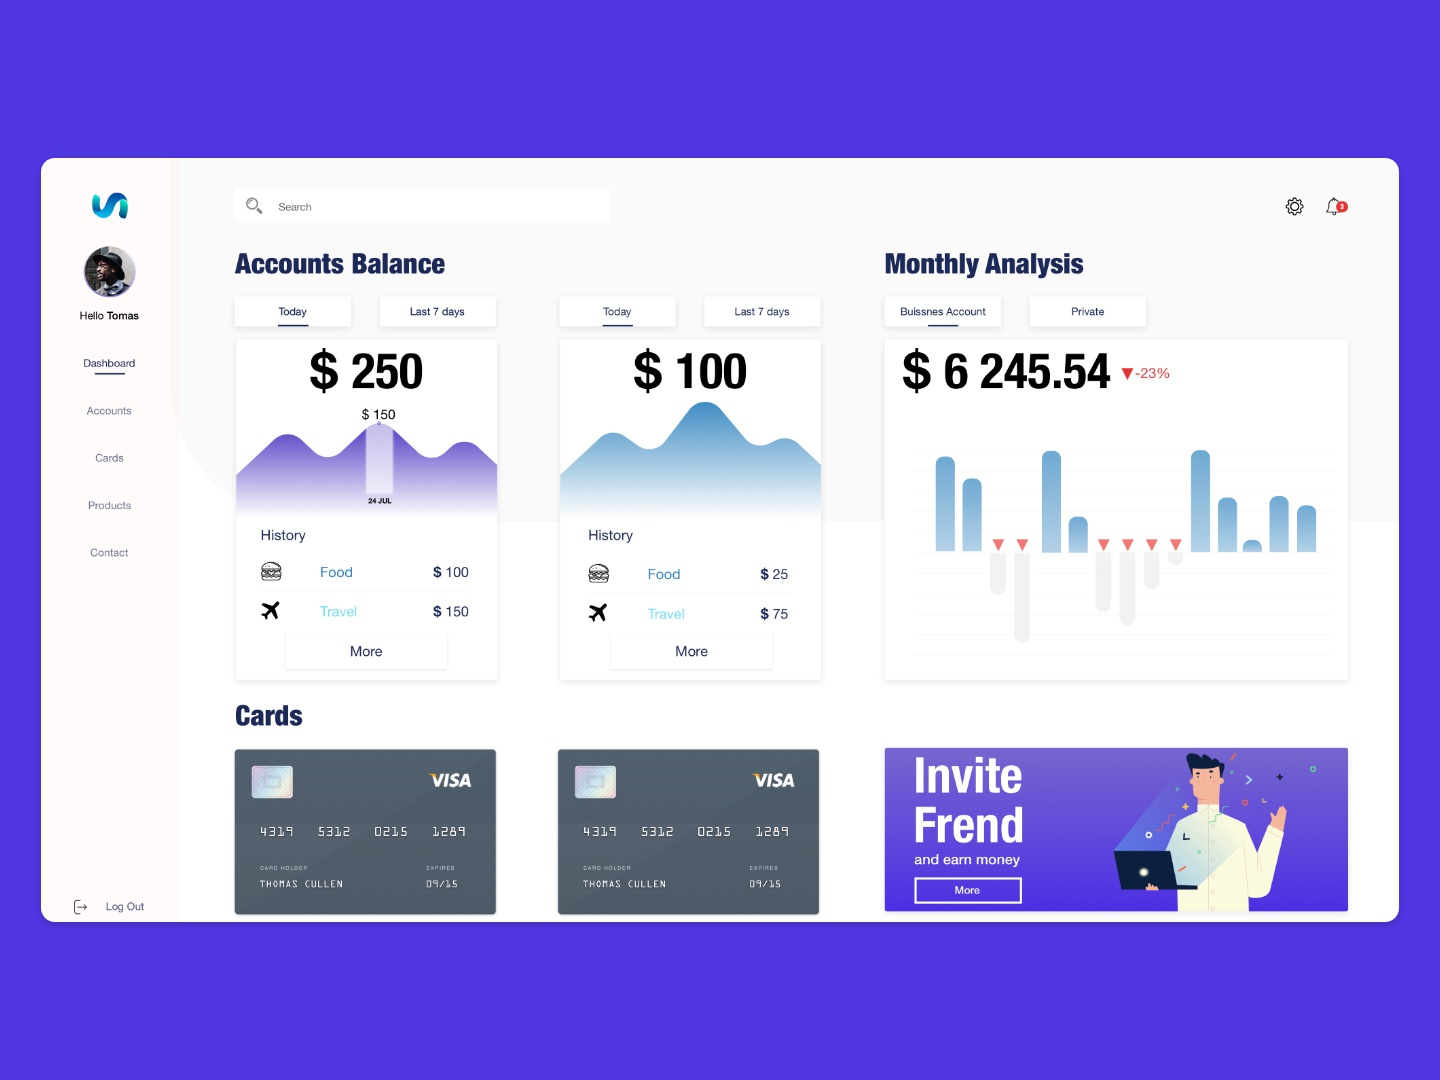 Simple bank app dashboard concept by Kamil Nowicz on Dribbble